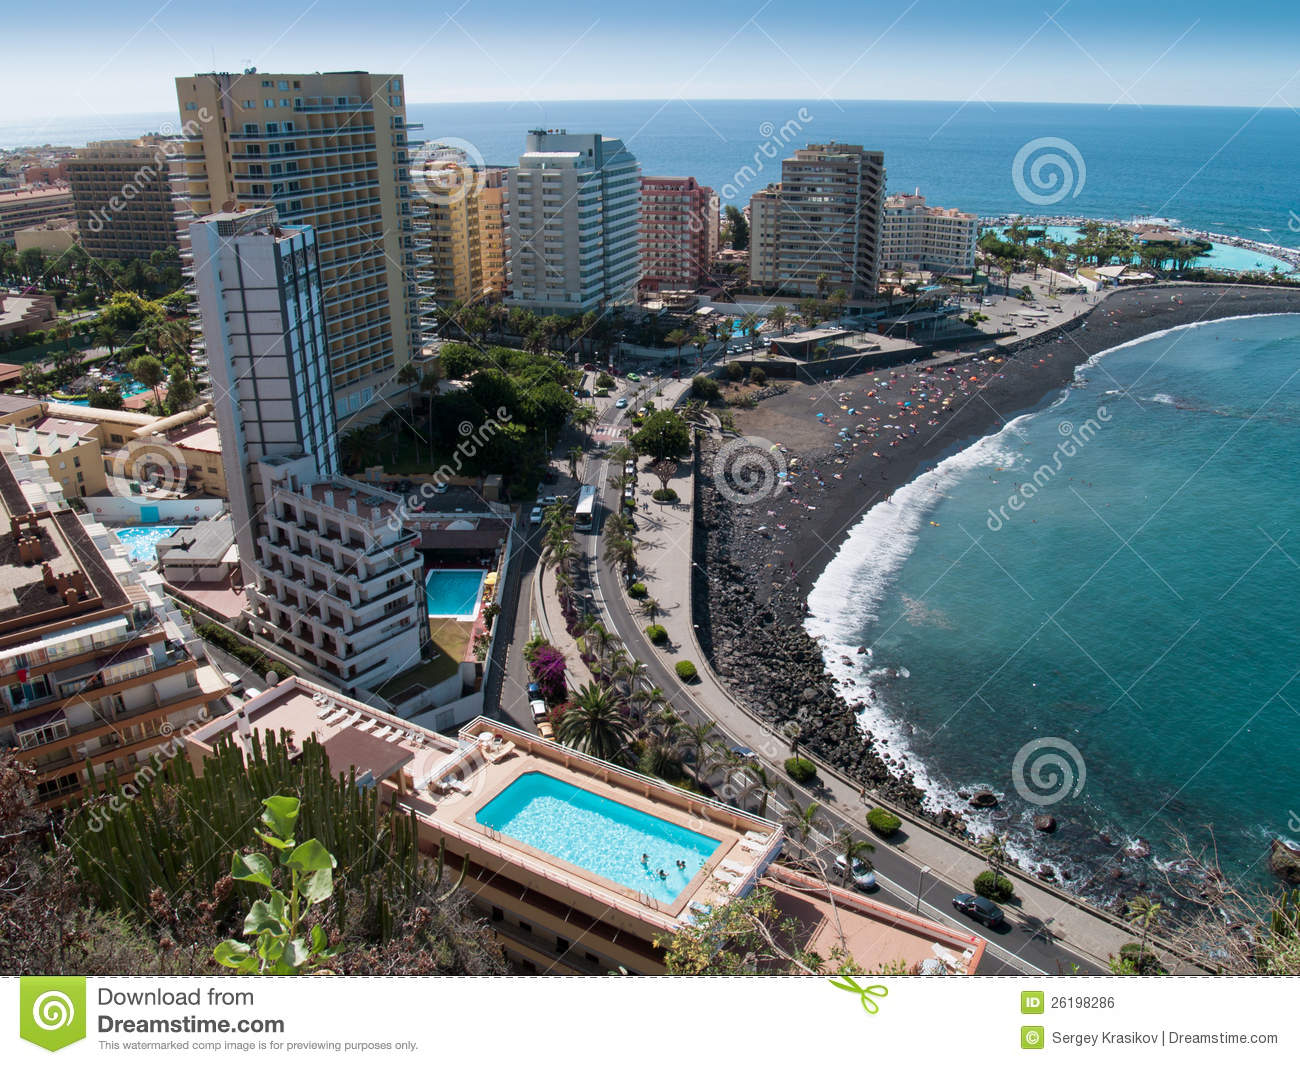 Tenerife Spain  city images : Beaches Of Puerto De La Cruz, Tenerife, Spain Royalty Free Stock Image ...